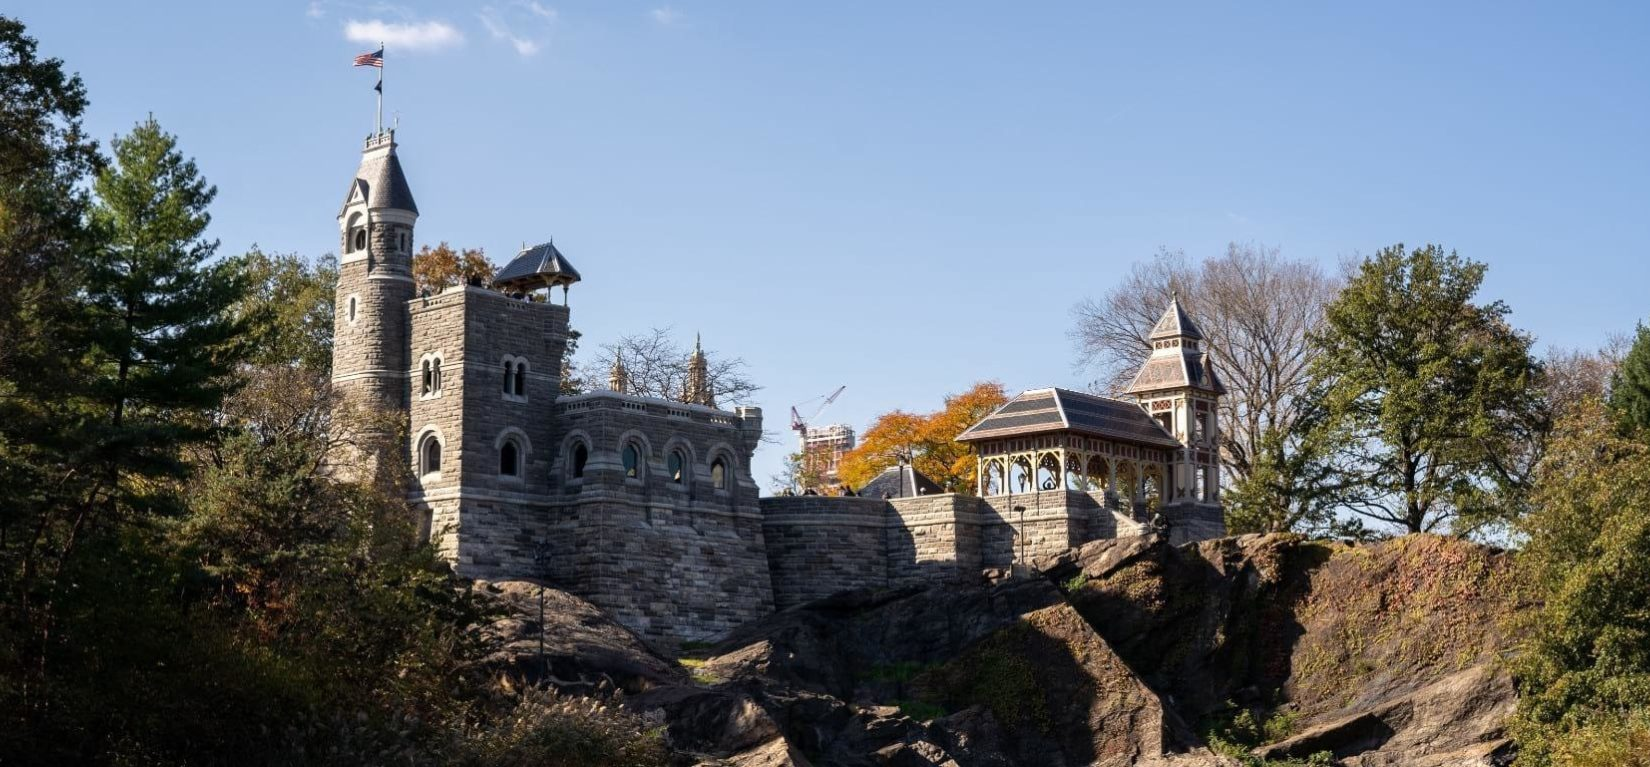 A view of Belvedere Castle, seen looking up from Turtle Pond